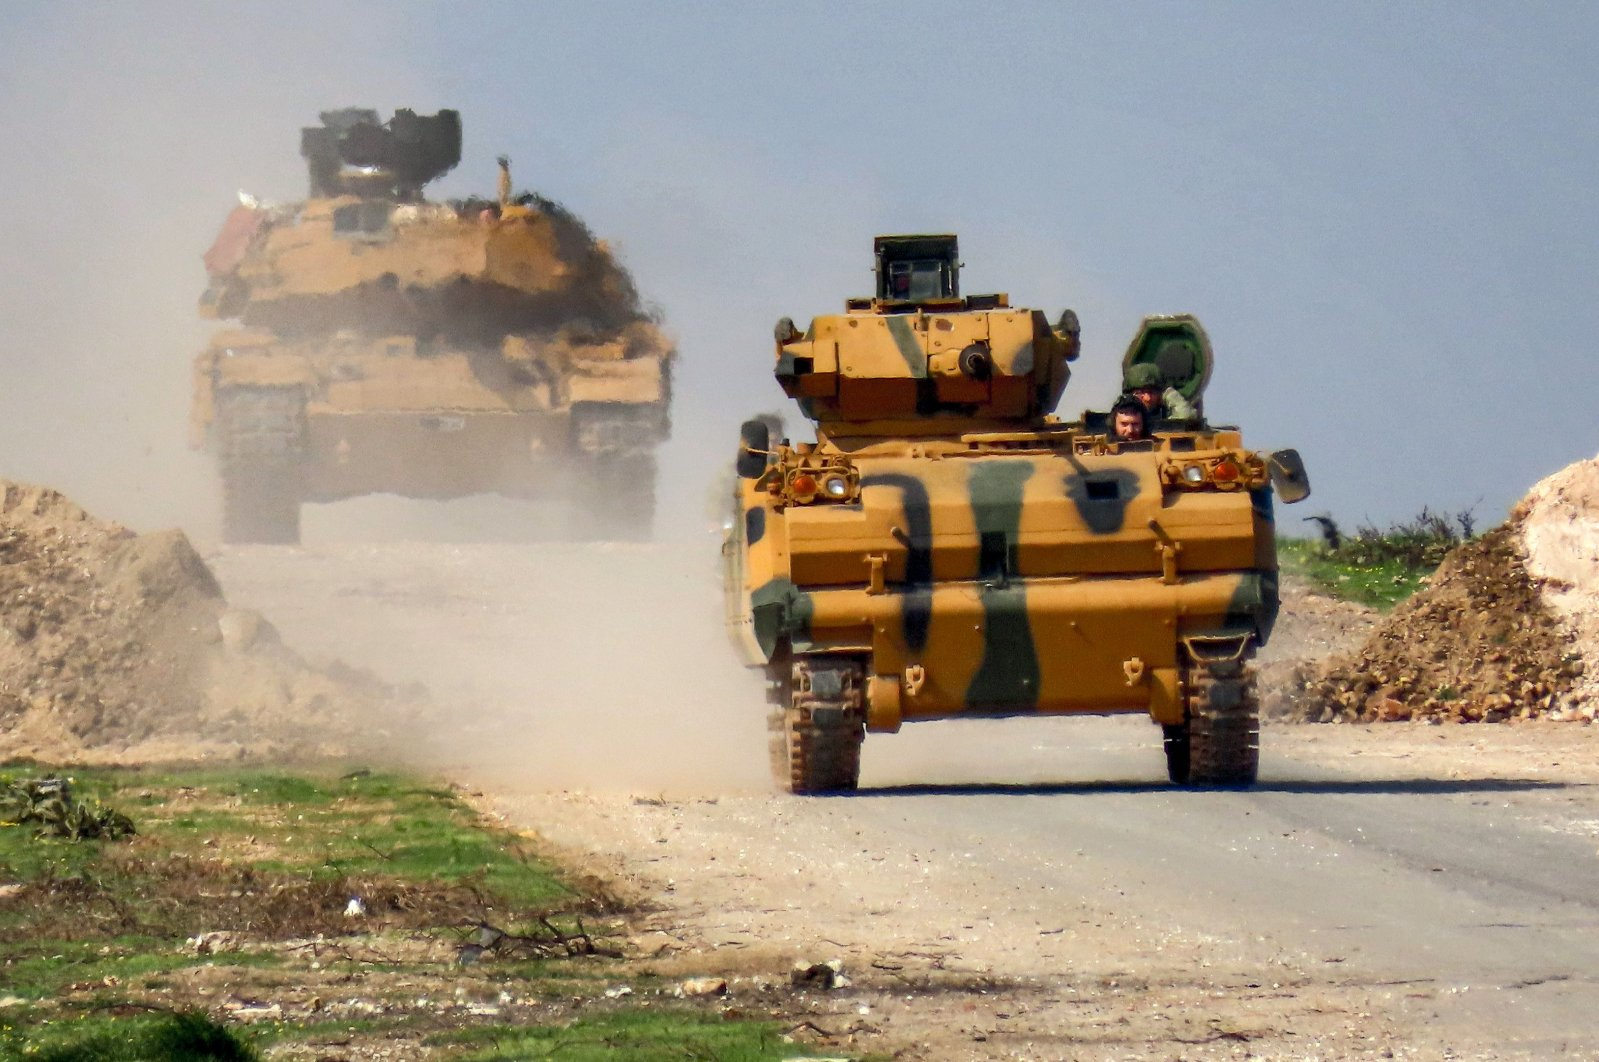 A Turkish military infantry-fighting vehicle (IFV) followed by an M60T battle tank are seen along the M4 highway, which links the northern Syrian provinces of Aleppo and Latakia, before incoming joint Turkish and Russian military patrols (as per an earlier agreed upon cease-fire deal) in the village of al-Nayrab, about 14 kilometers southeast of the city of Idlib and 7 kilometers west of Saraqib in northwestern Syria, March 15, 2020. (AFP)